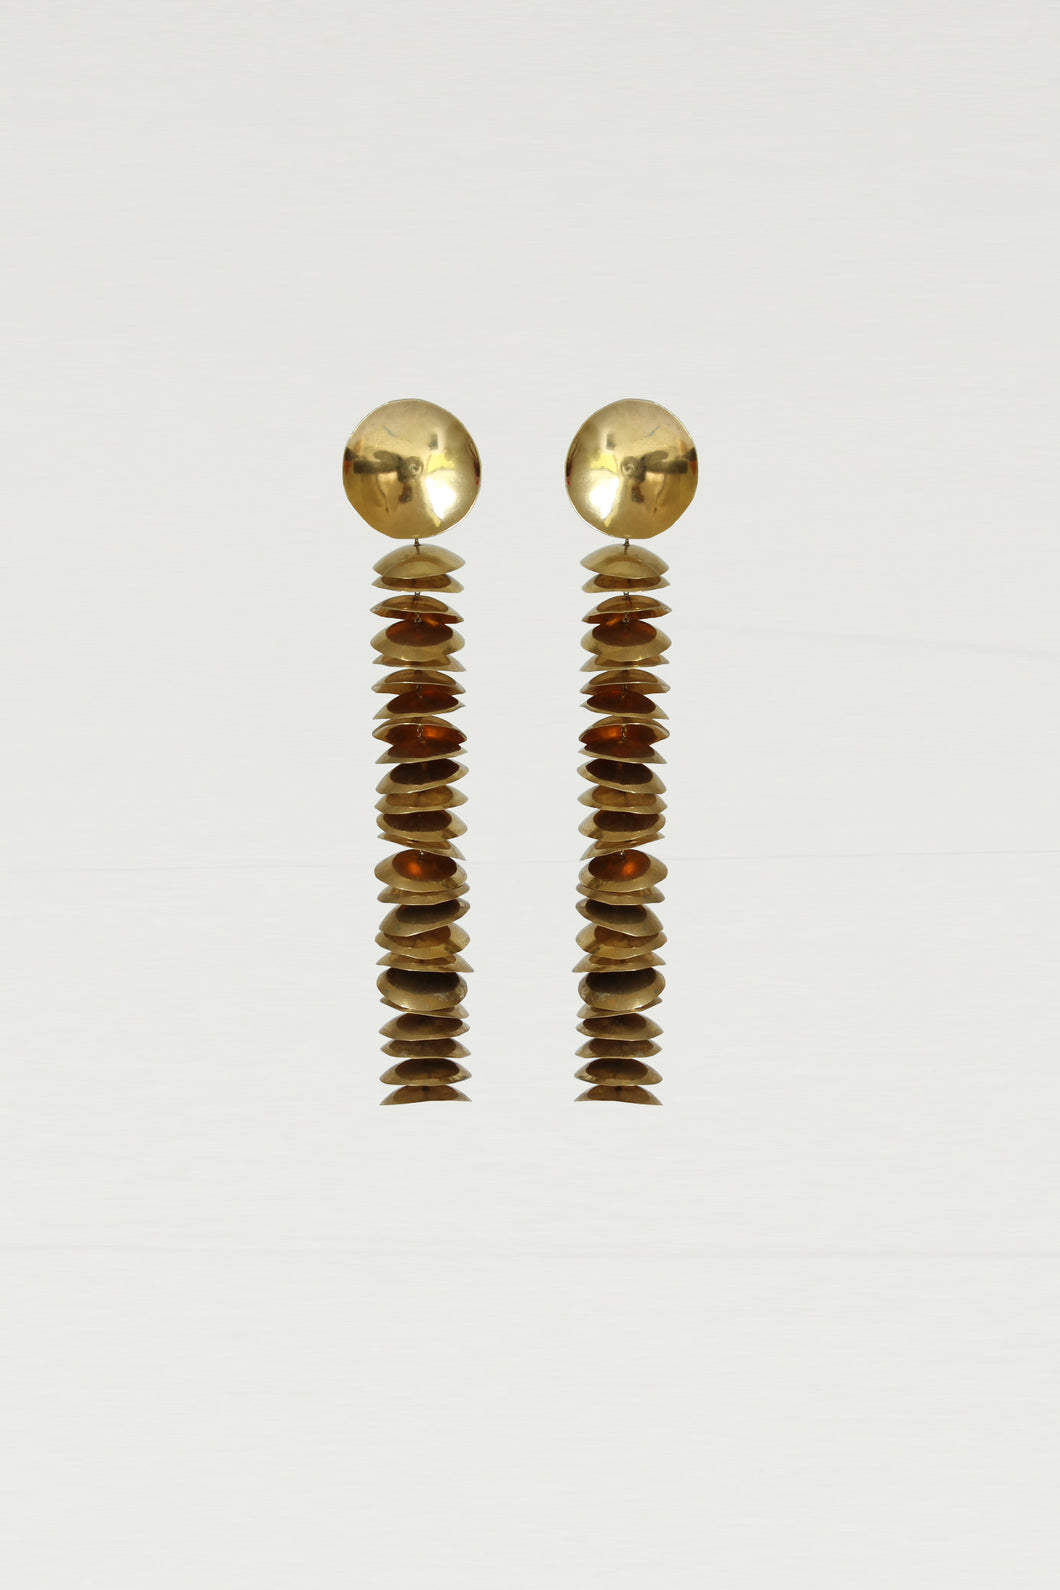 Series 6, earring 8, gold